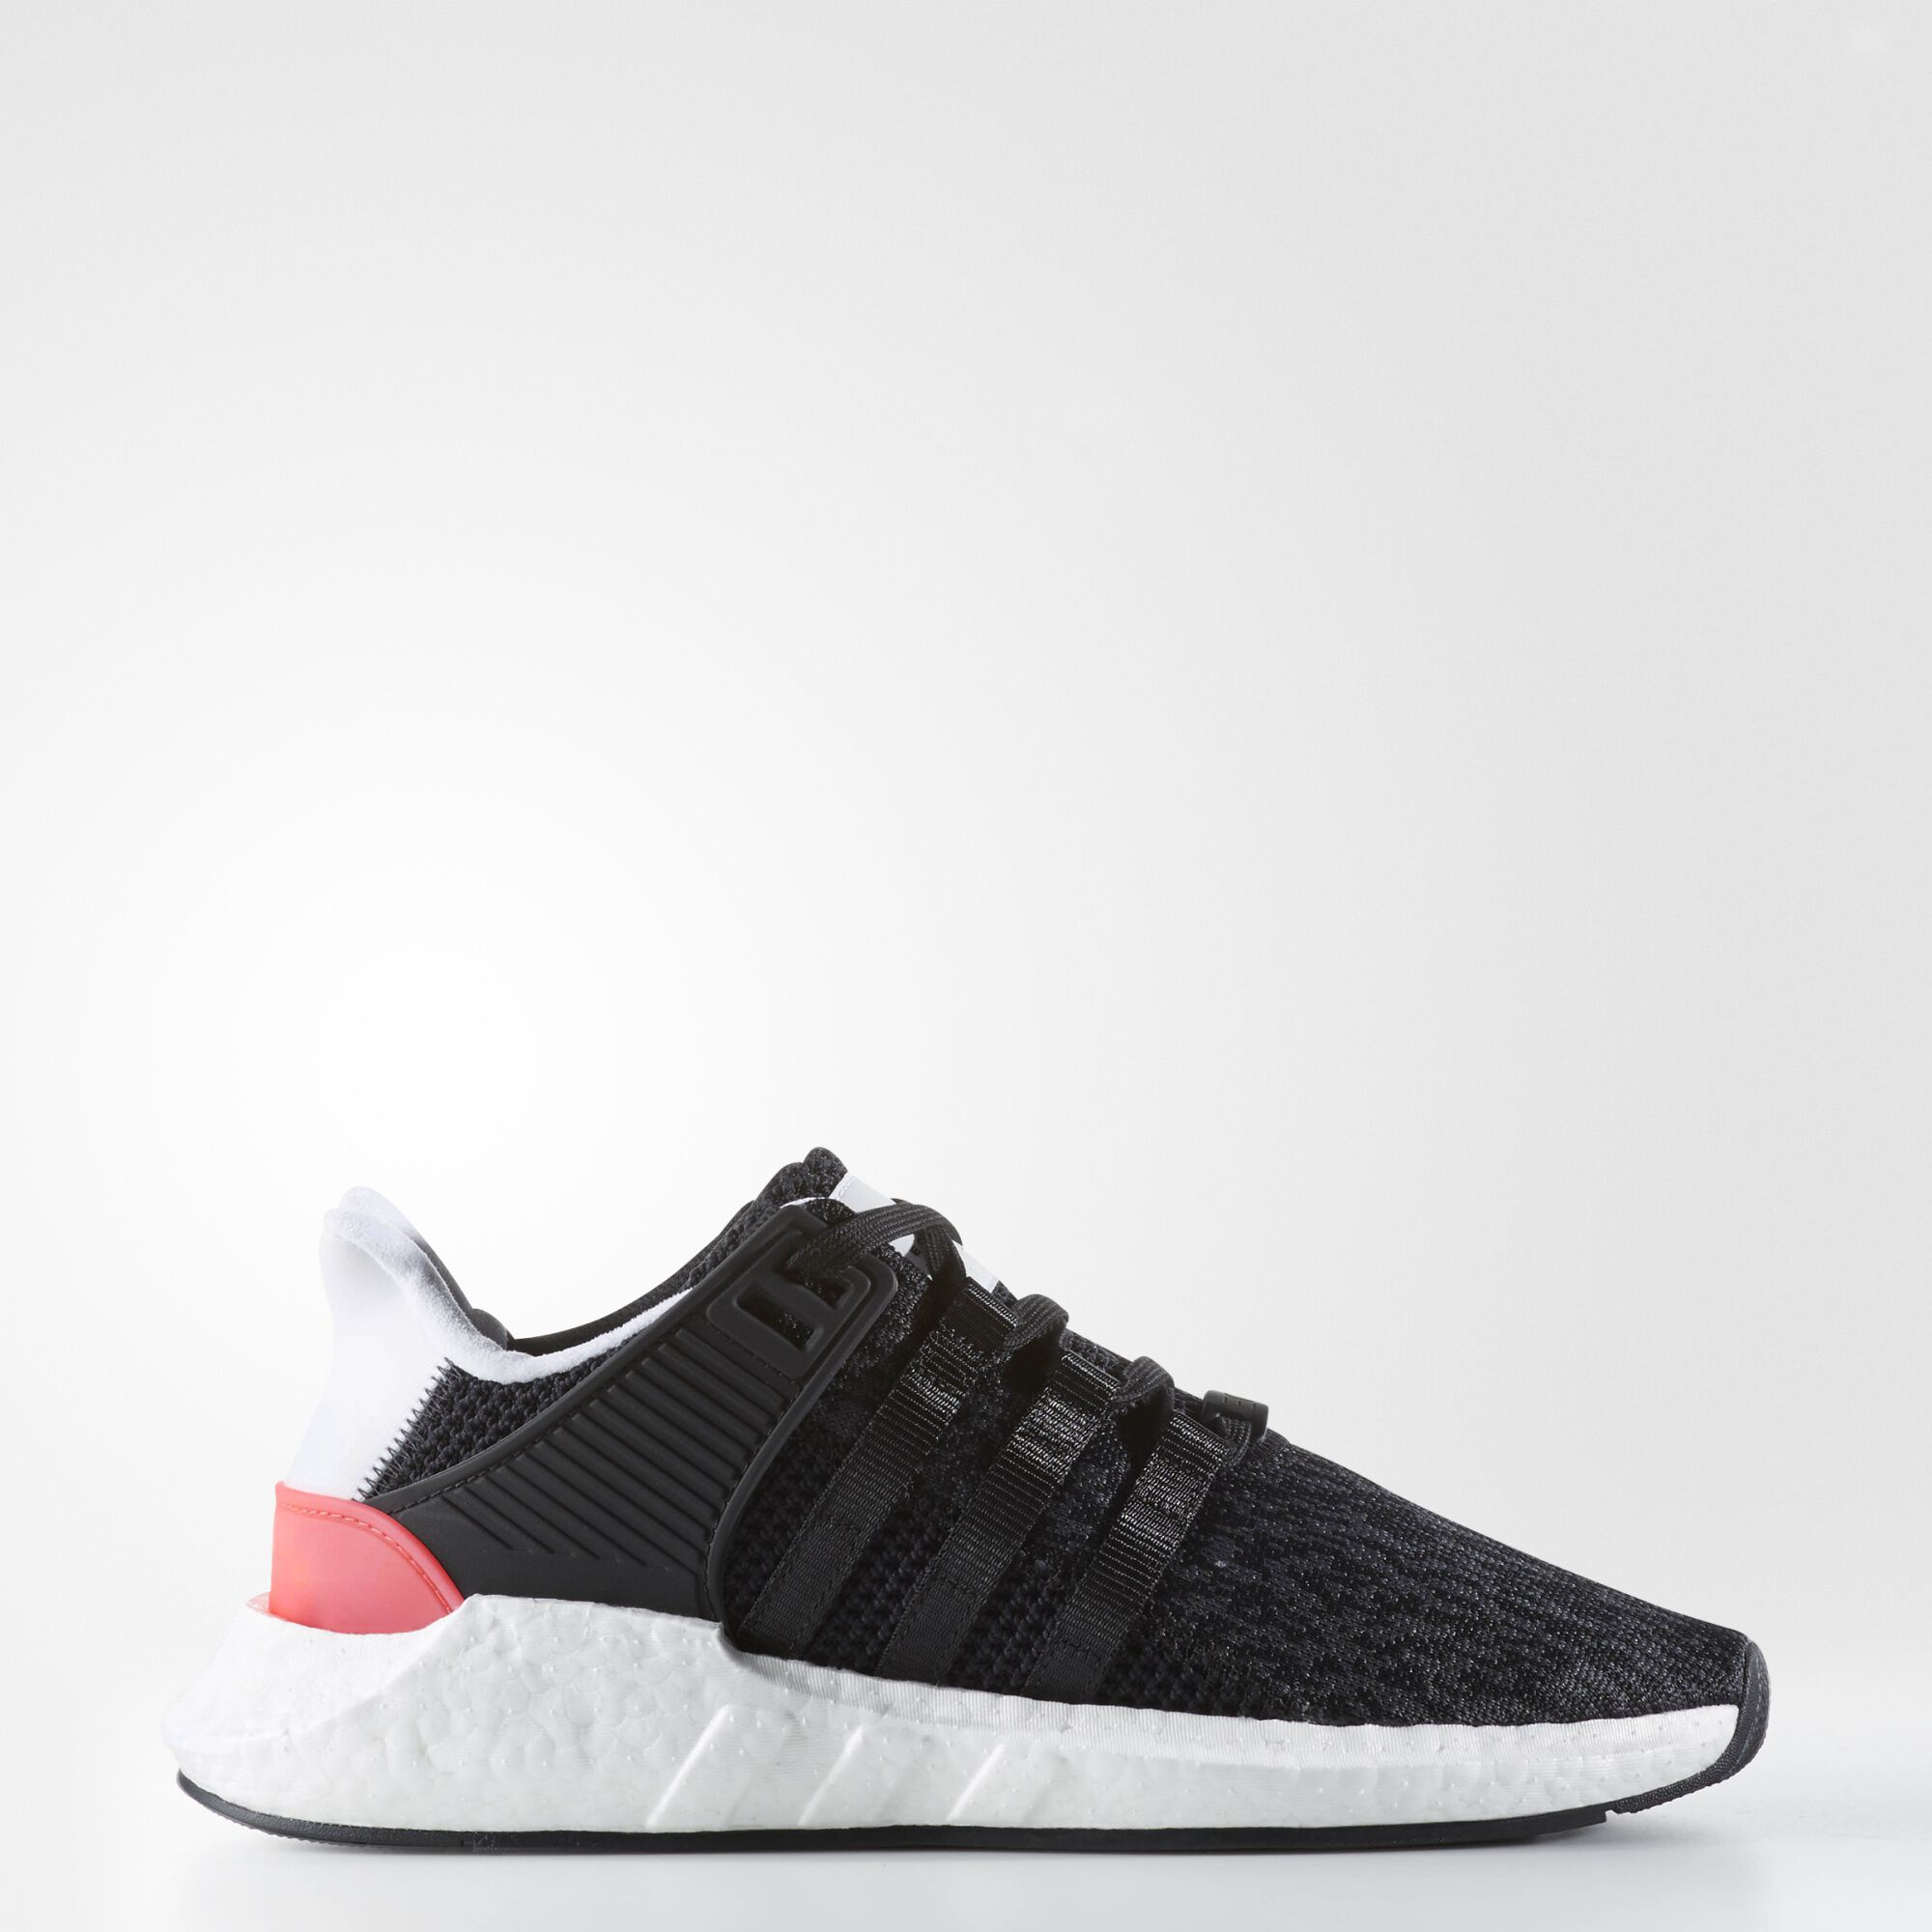 USG Store TOMORROW 11am ADIDAS EQT BOOST 93/17, $210